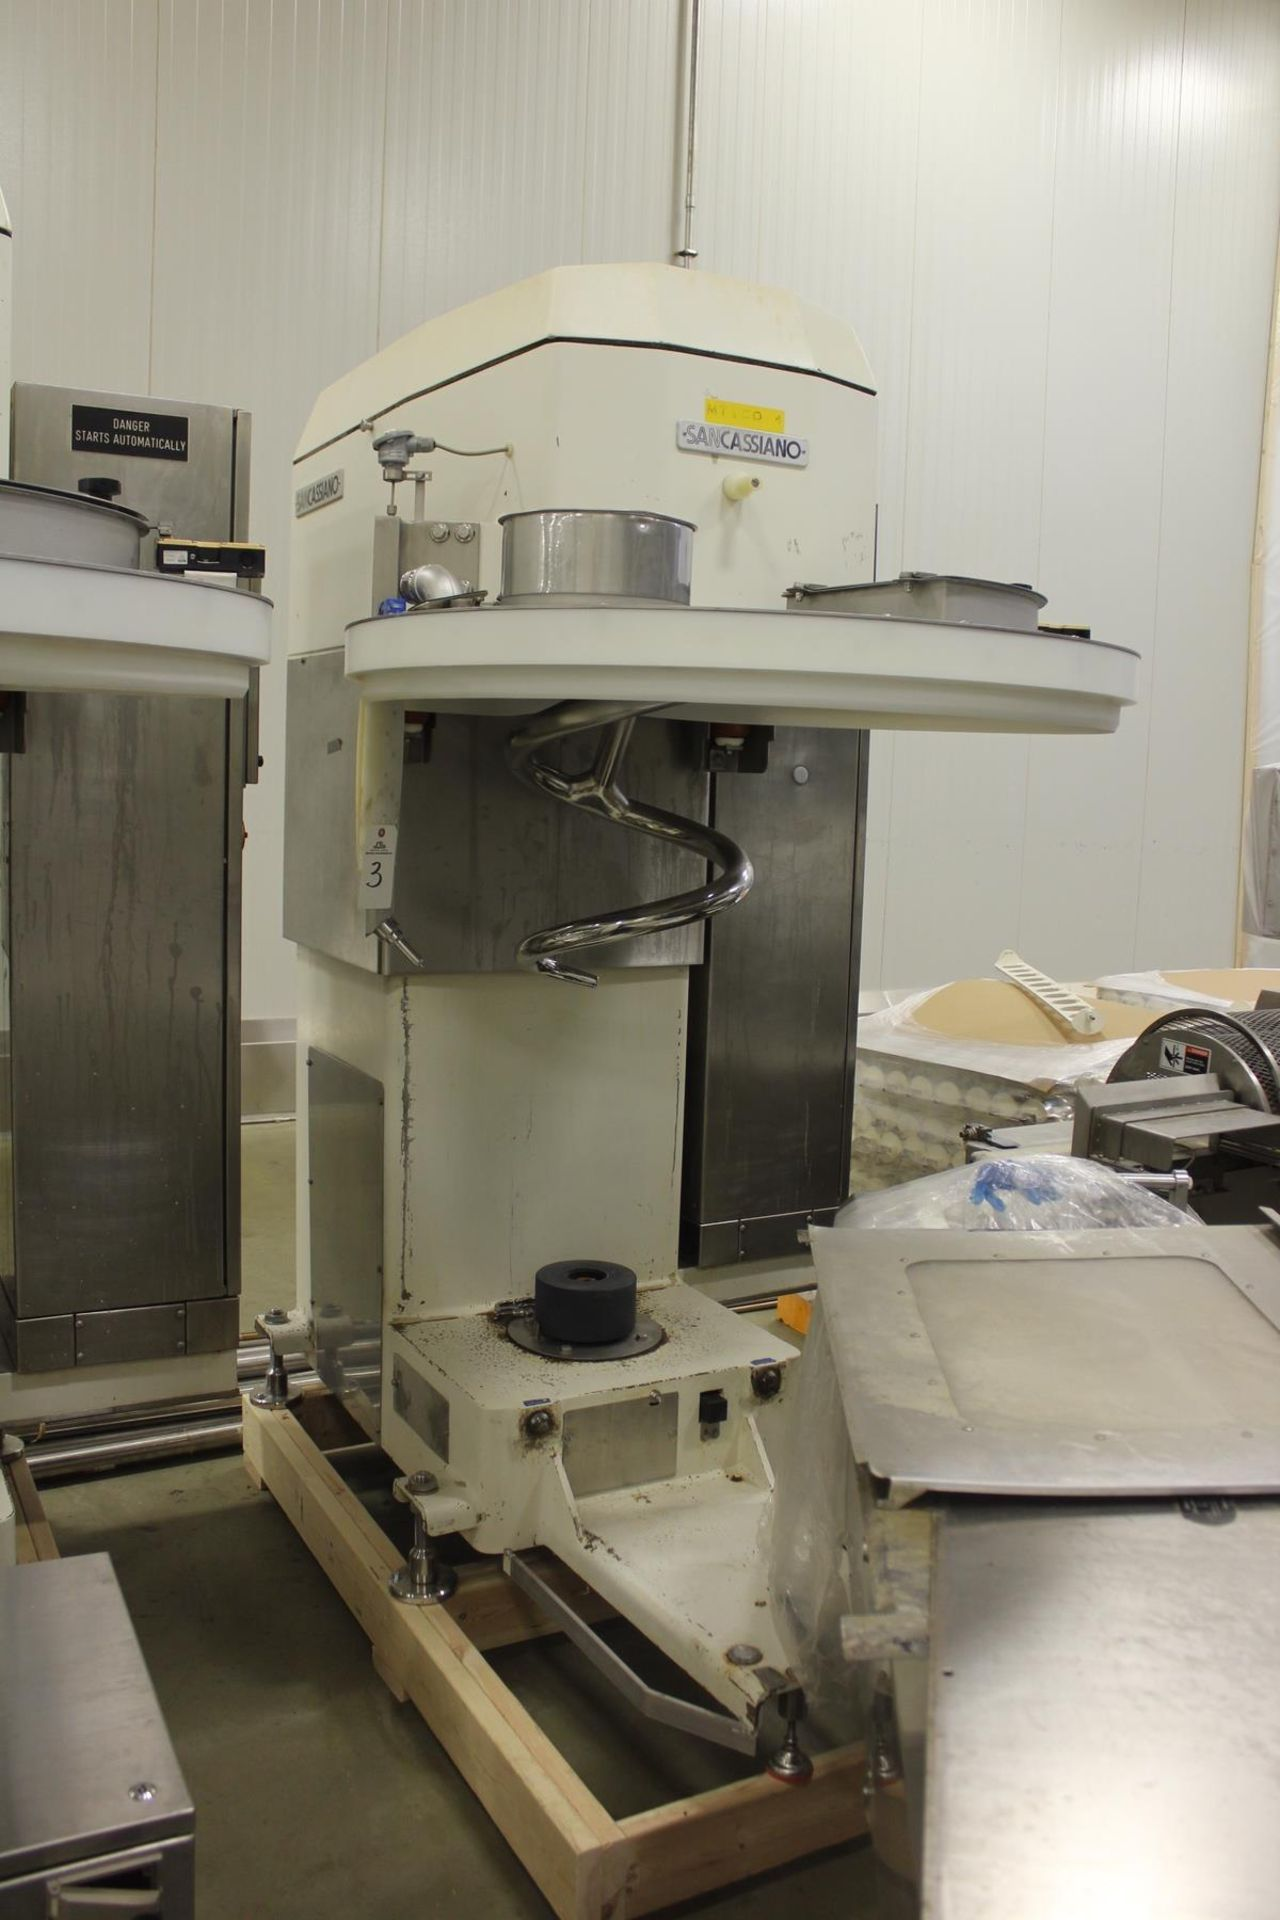 Lot 3 - 2009 San Cassiano M# SE400 Spiral Bowl Mixer, Mixing Bowl, S/N 14973, 400/500 Kg. C | Rig Fee: $1185